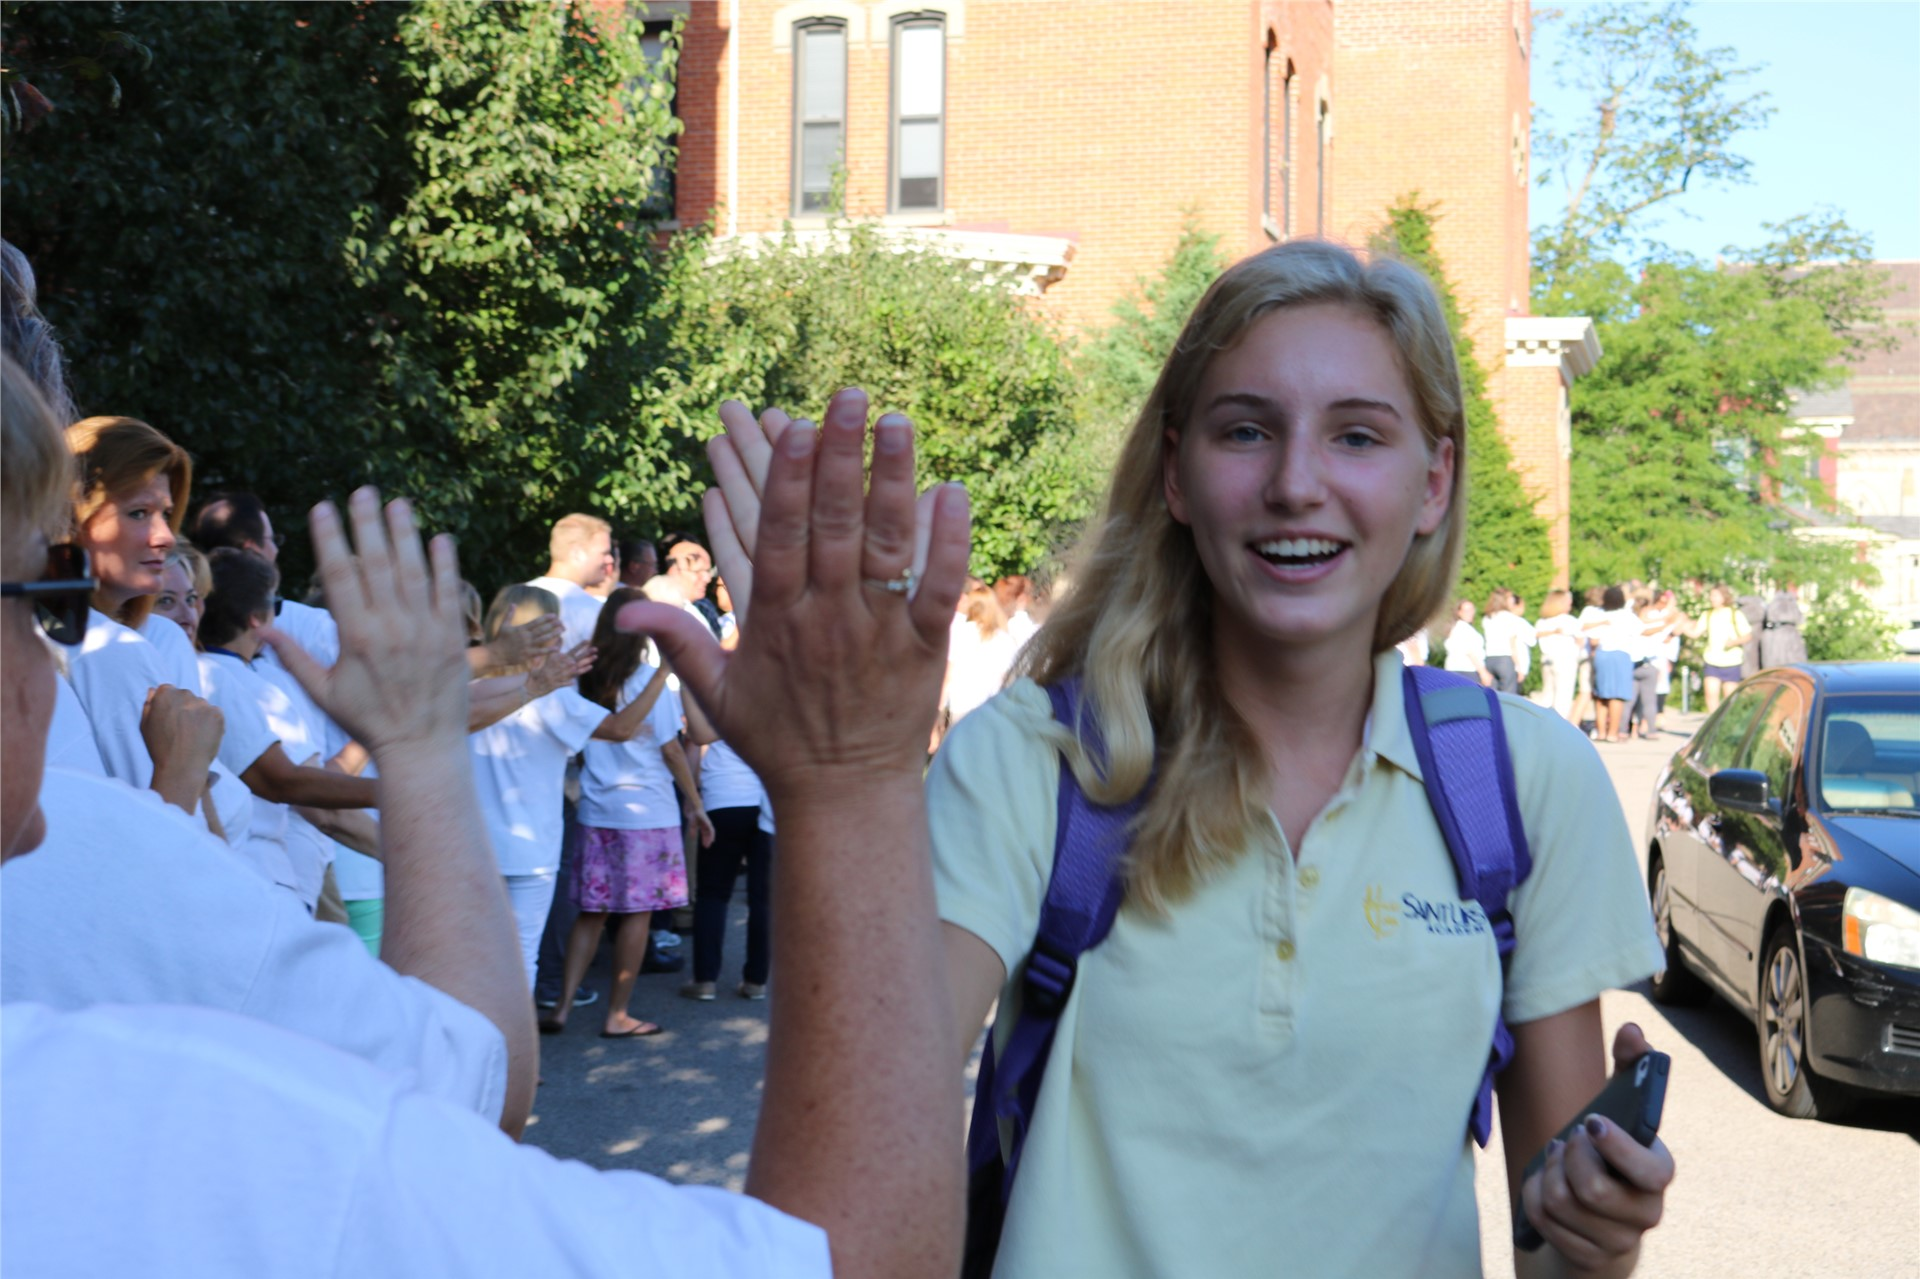 Welcome to the first day of a new school year at SUA!